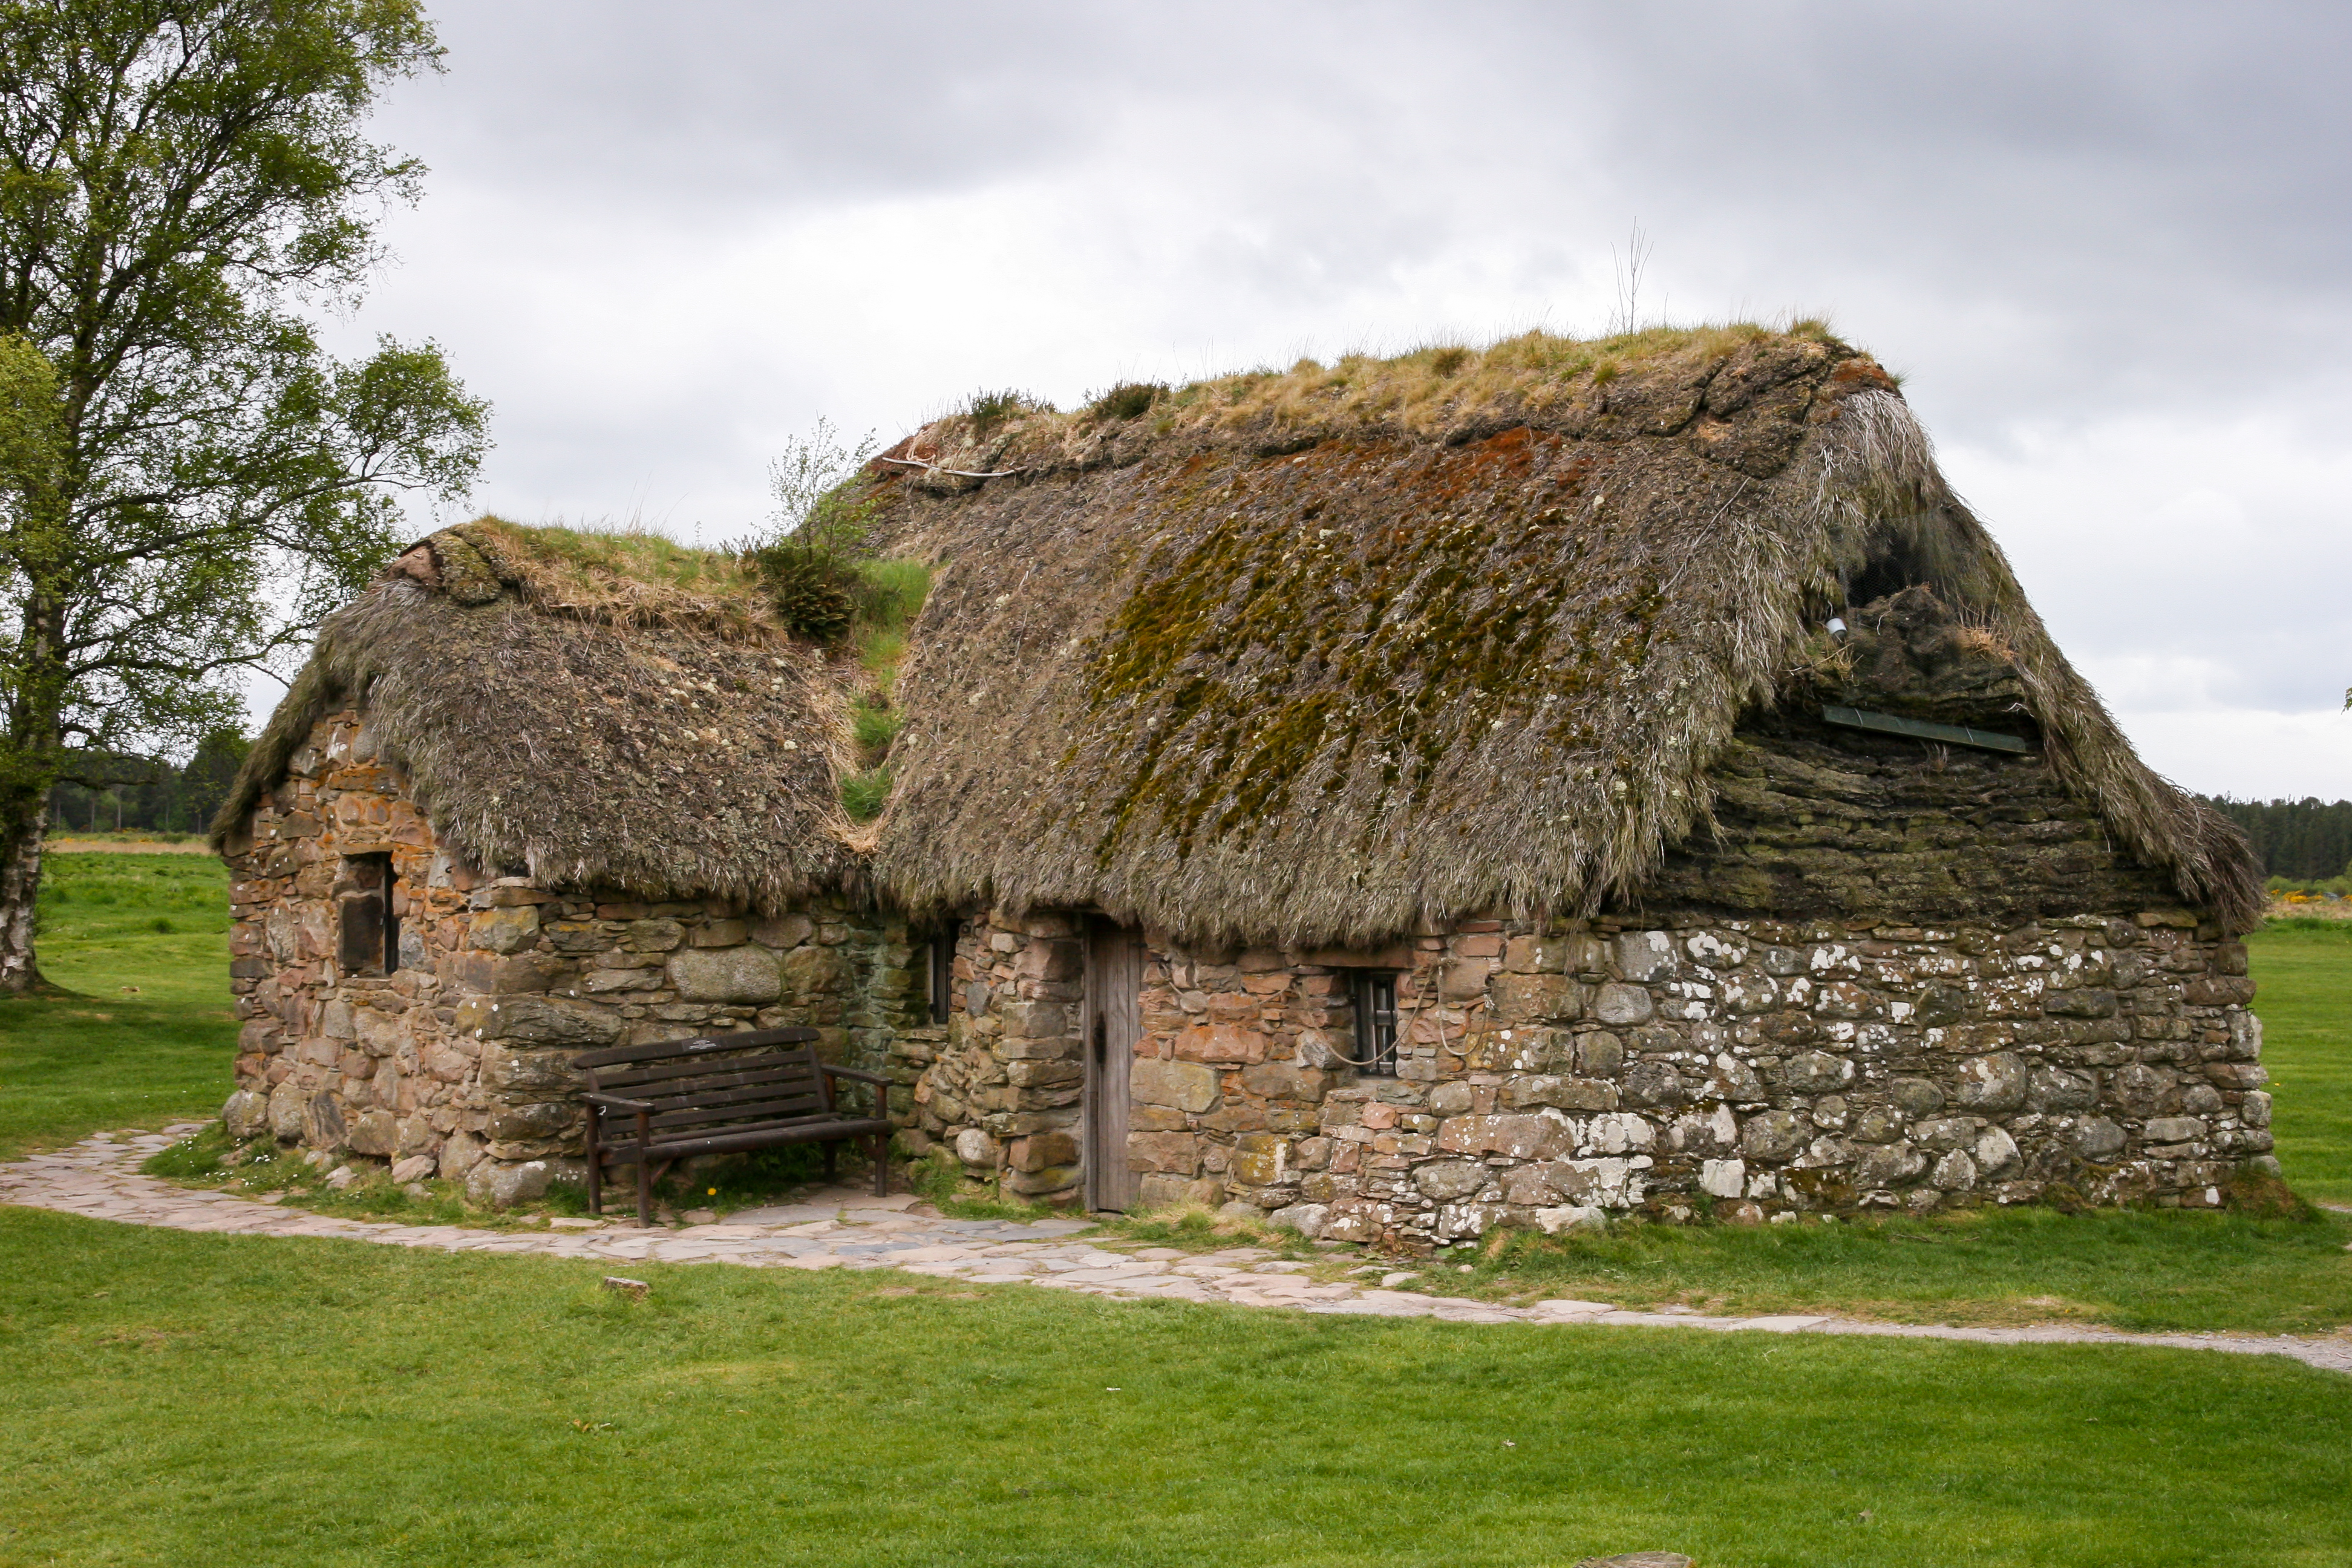 culloden online dating 18 - 19 august: culloden tower 2 september - auchinleck house 7 - 10 september - astley castle visiting landmarks  probably dating from the 1890s, .